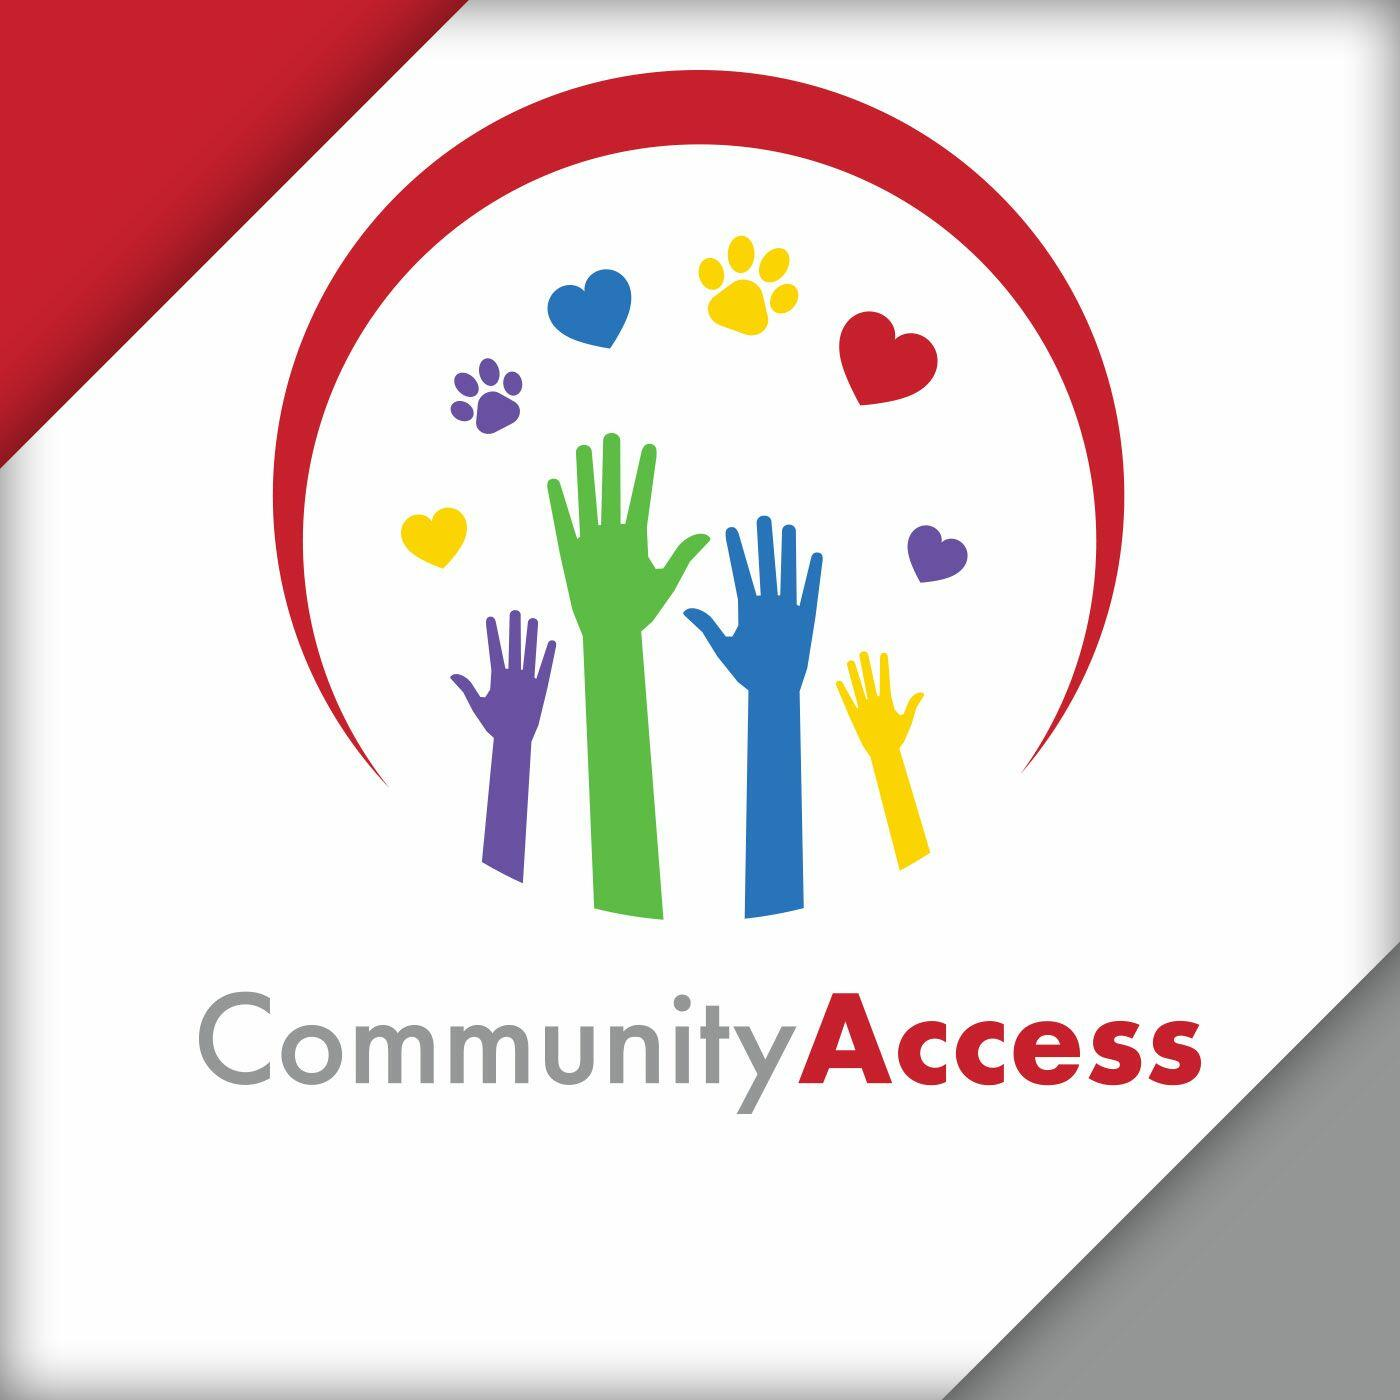 Listen to the Community Access Episode - Oak Hill: Power Thru The Powder Adaptive Skiing Event! on iHeartRadio | iHeartRadio